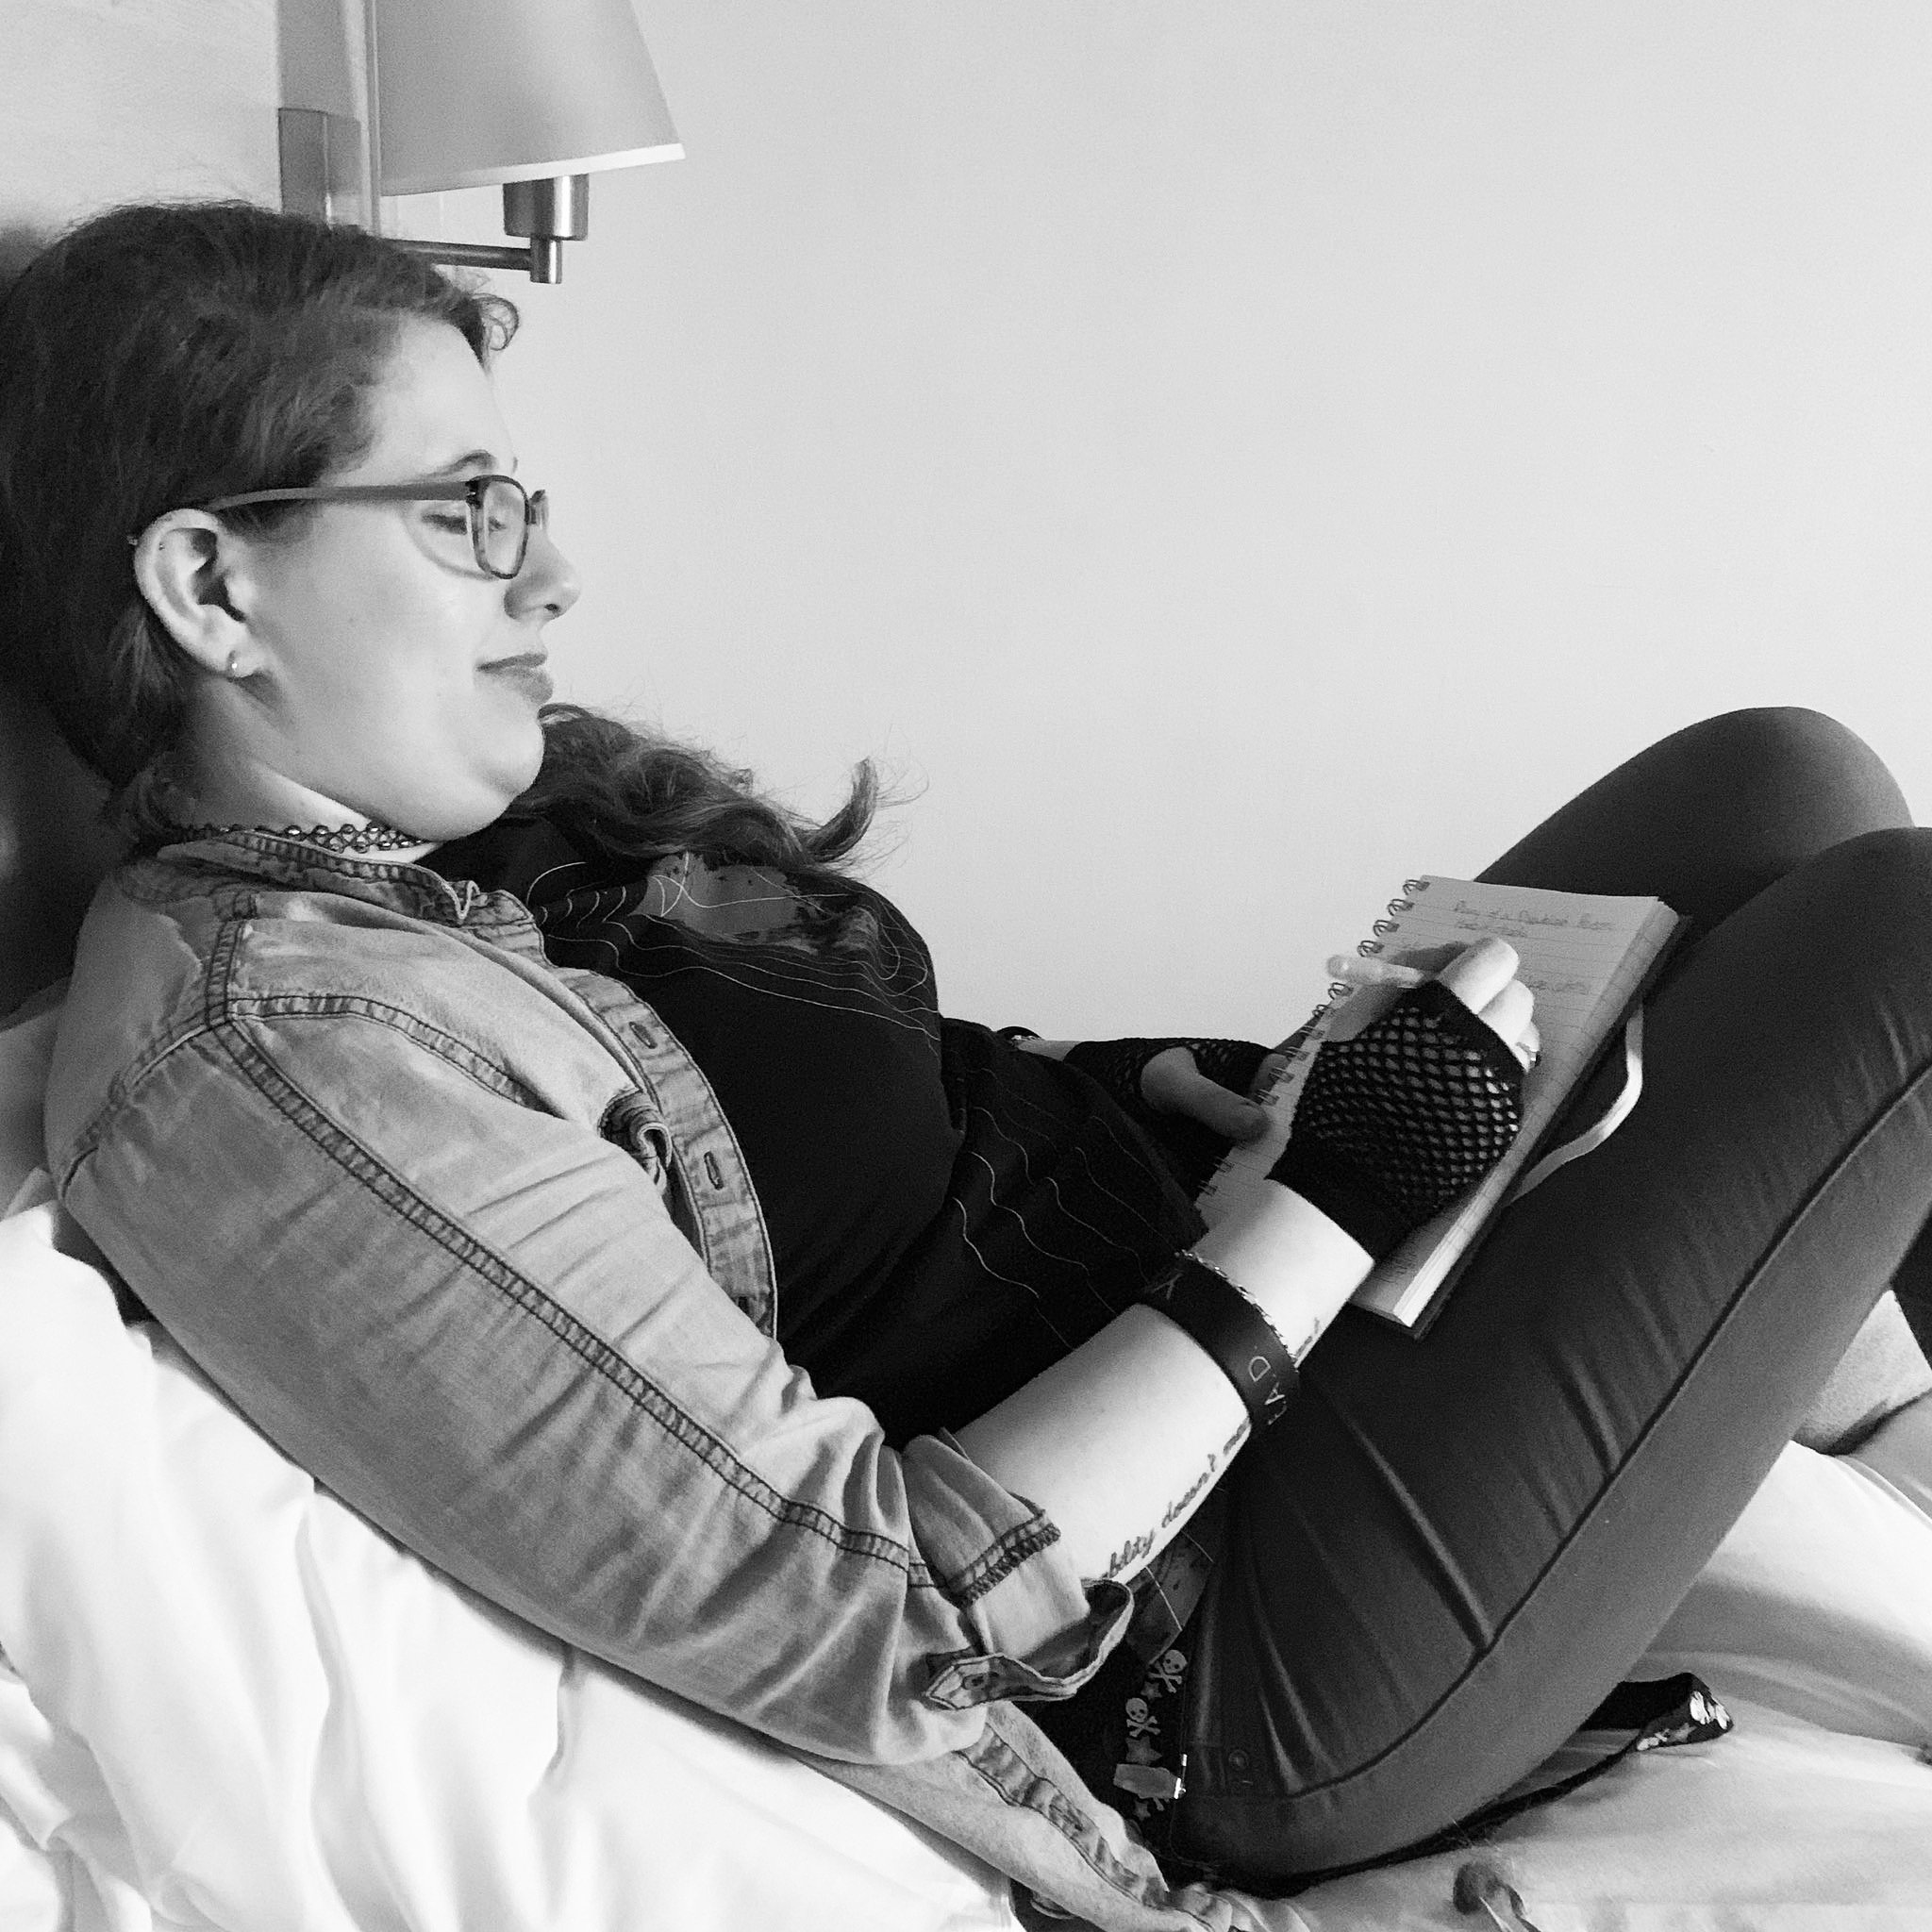 A black on white photograph of myself sat on the bed in the hotel room, leaning back on the pillows, scribbling some notes into my notebook in preparation for writing this blog post. I'm wearing jeans, a t-shirt, & a denim shirt.